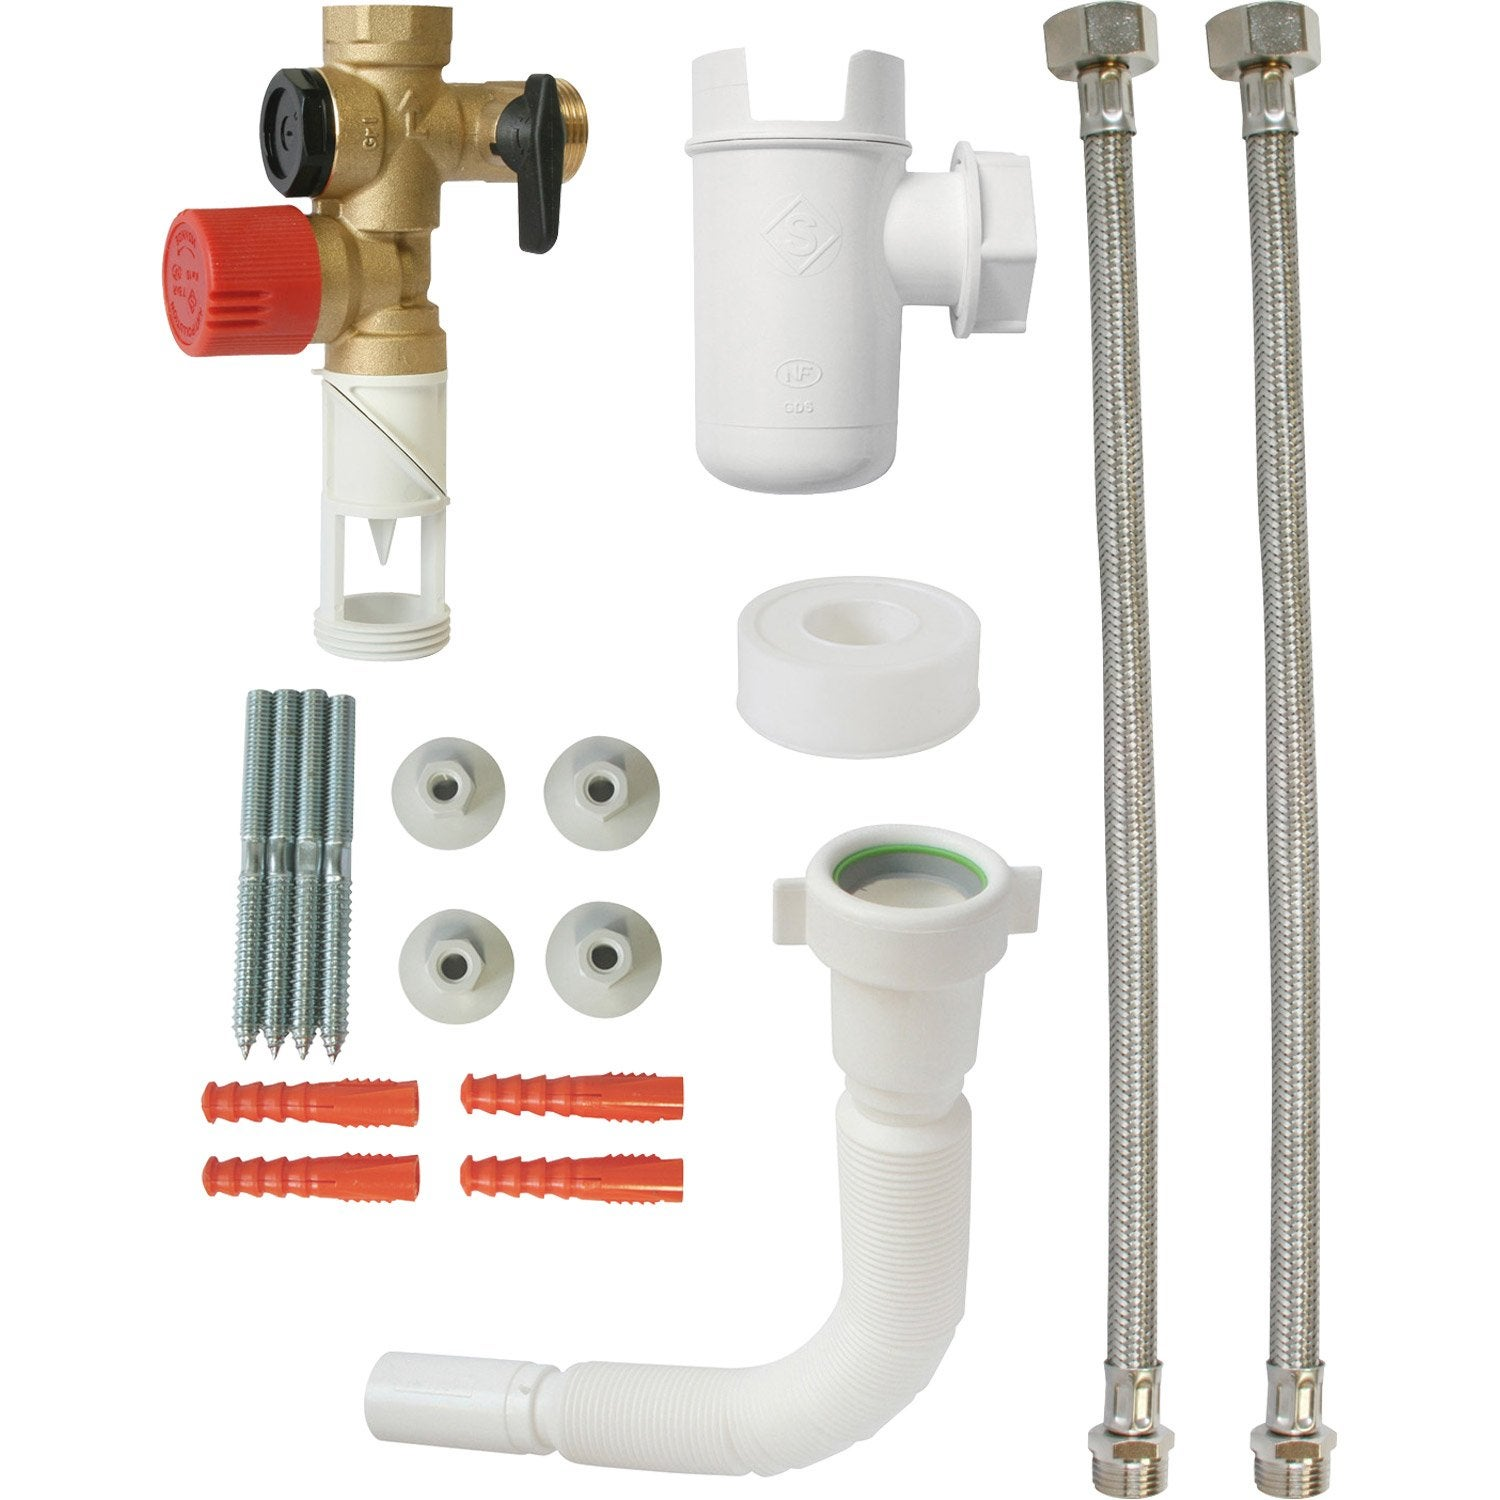 Kit groupe de s curit complet inox pour eau agressive equation leroy merlin - Eau oxygenee leroy merlin ...